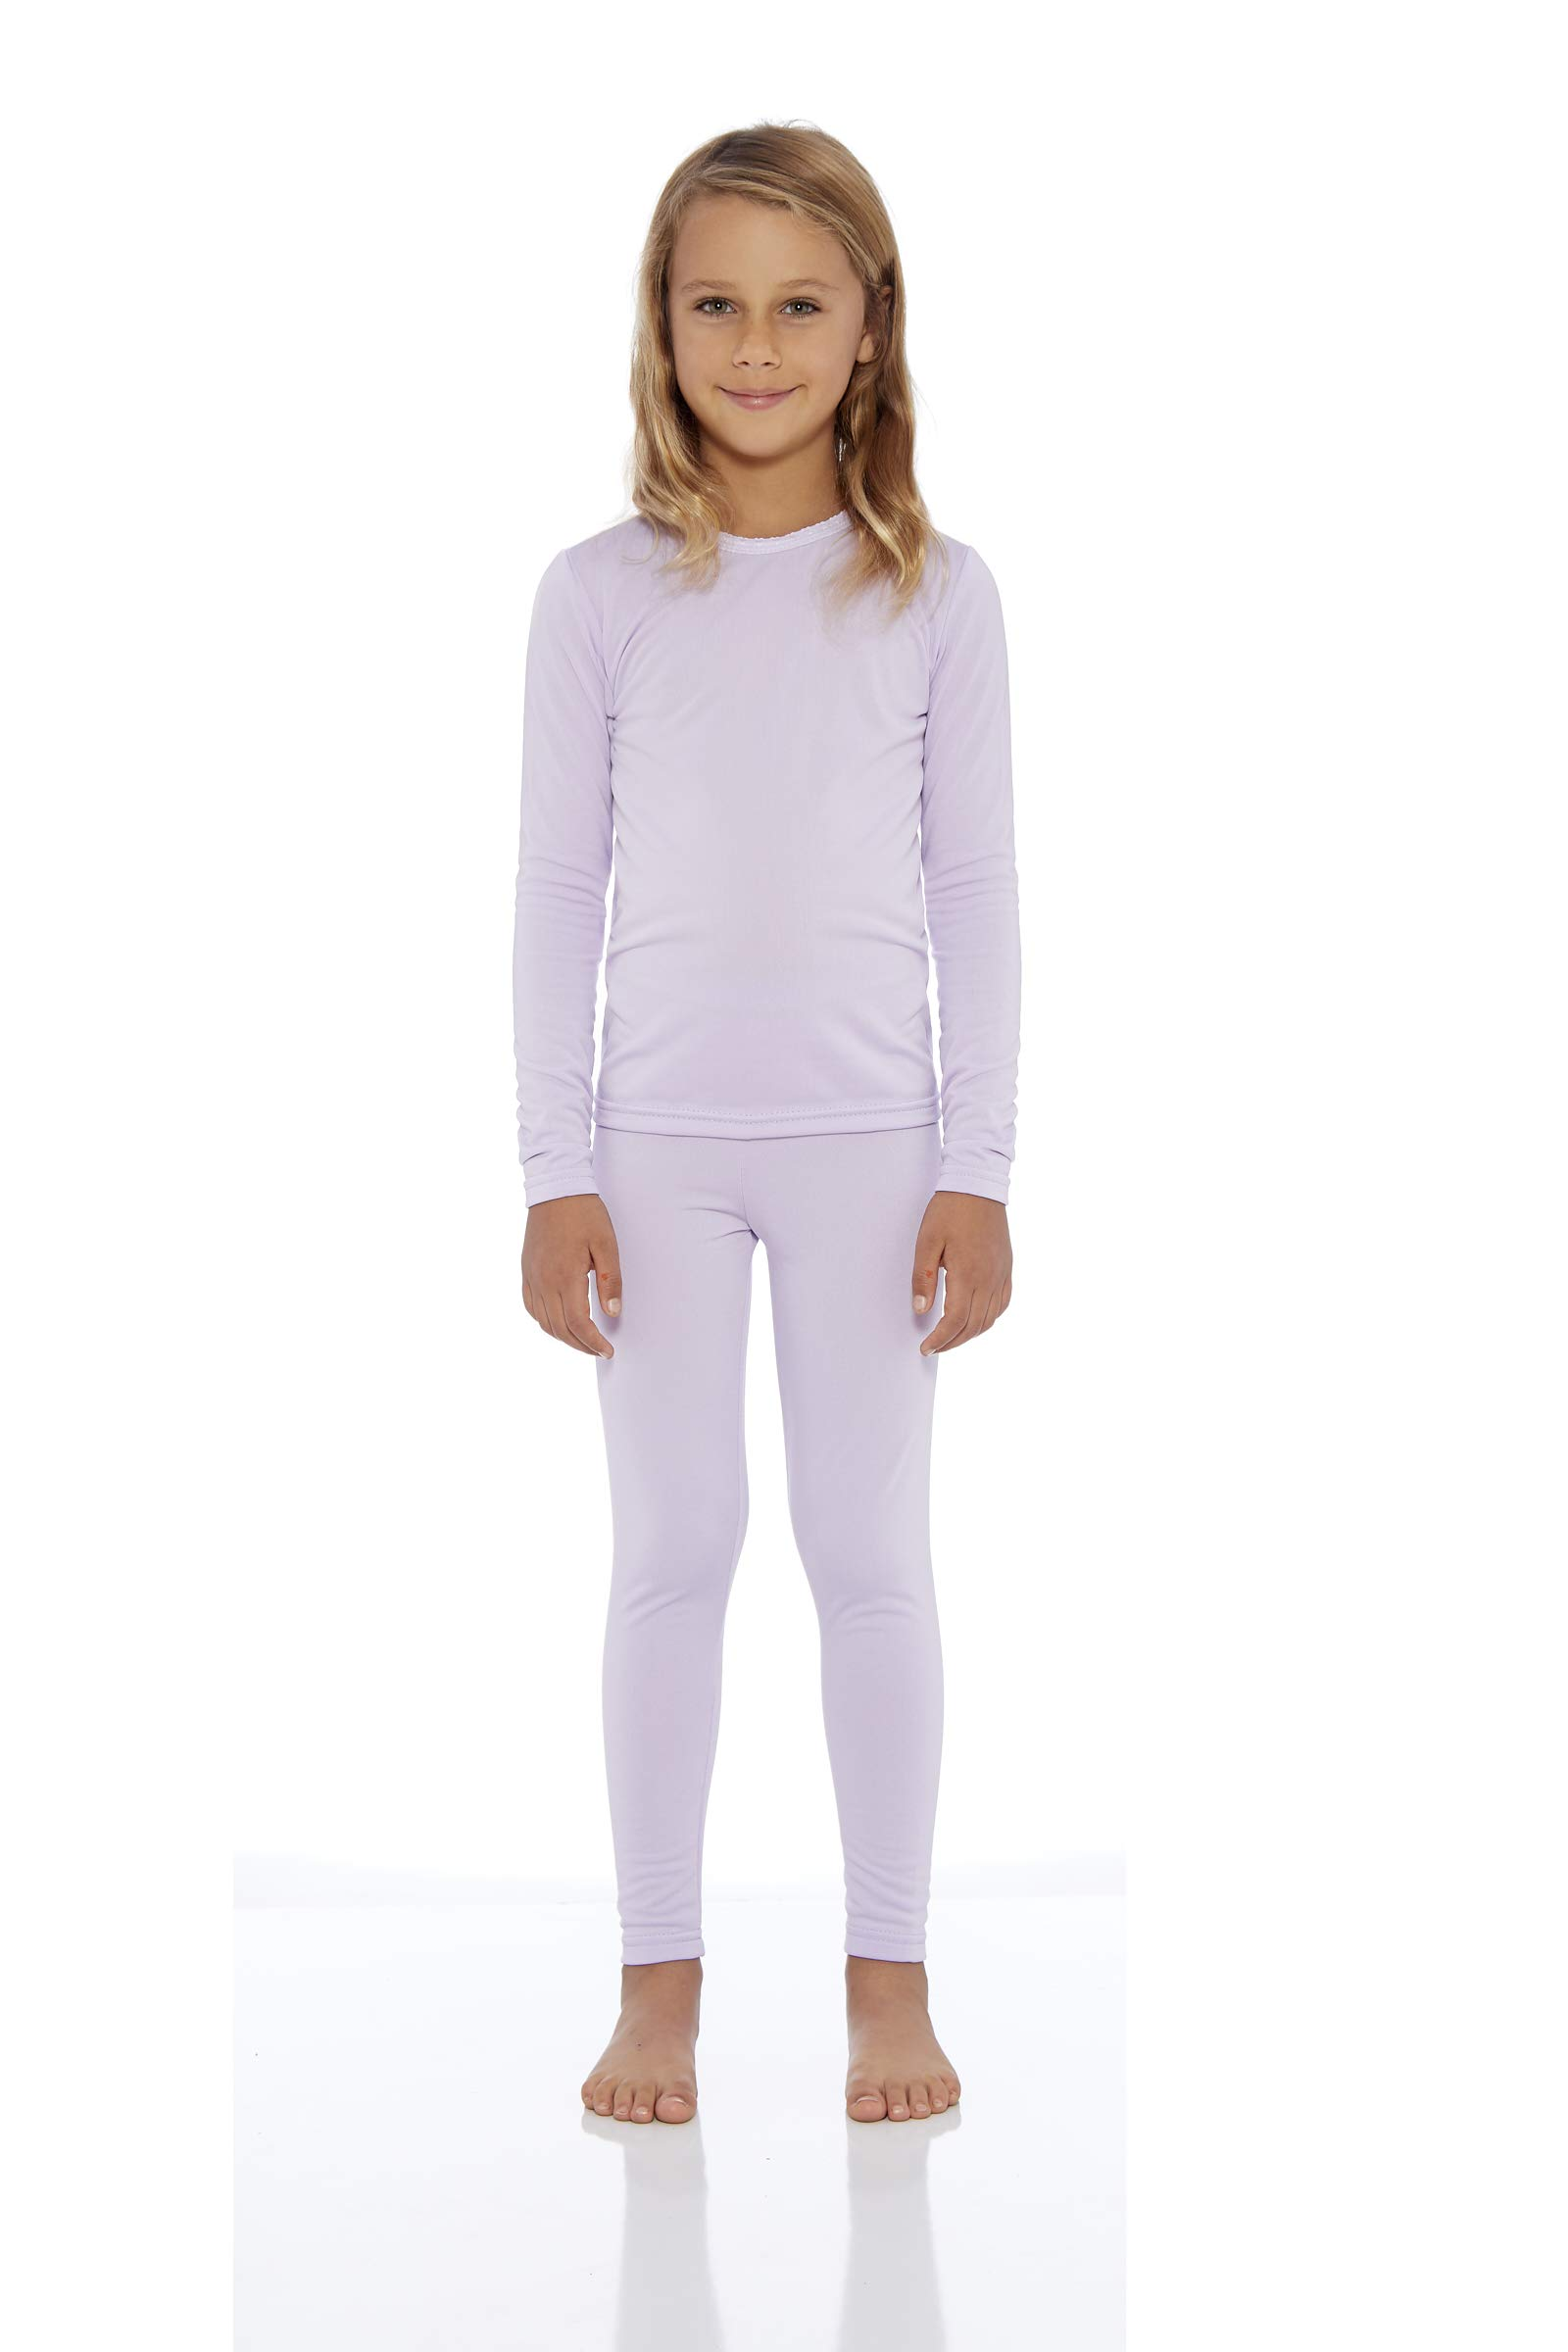 Rocky Girl's Smooth Knit Thermal Underwear 2PC Set Long John Top and Bottom Pajamas Light Purple, M by Rocky